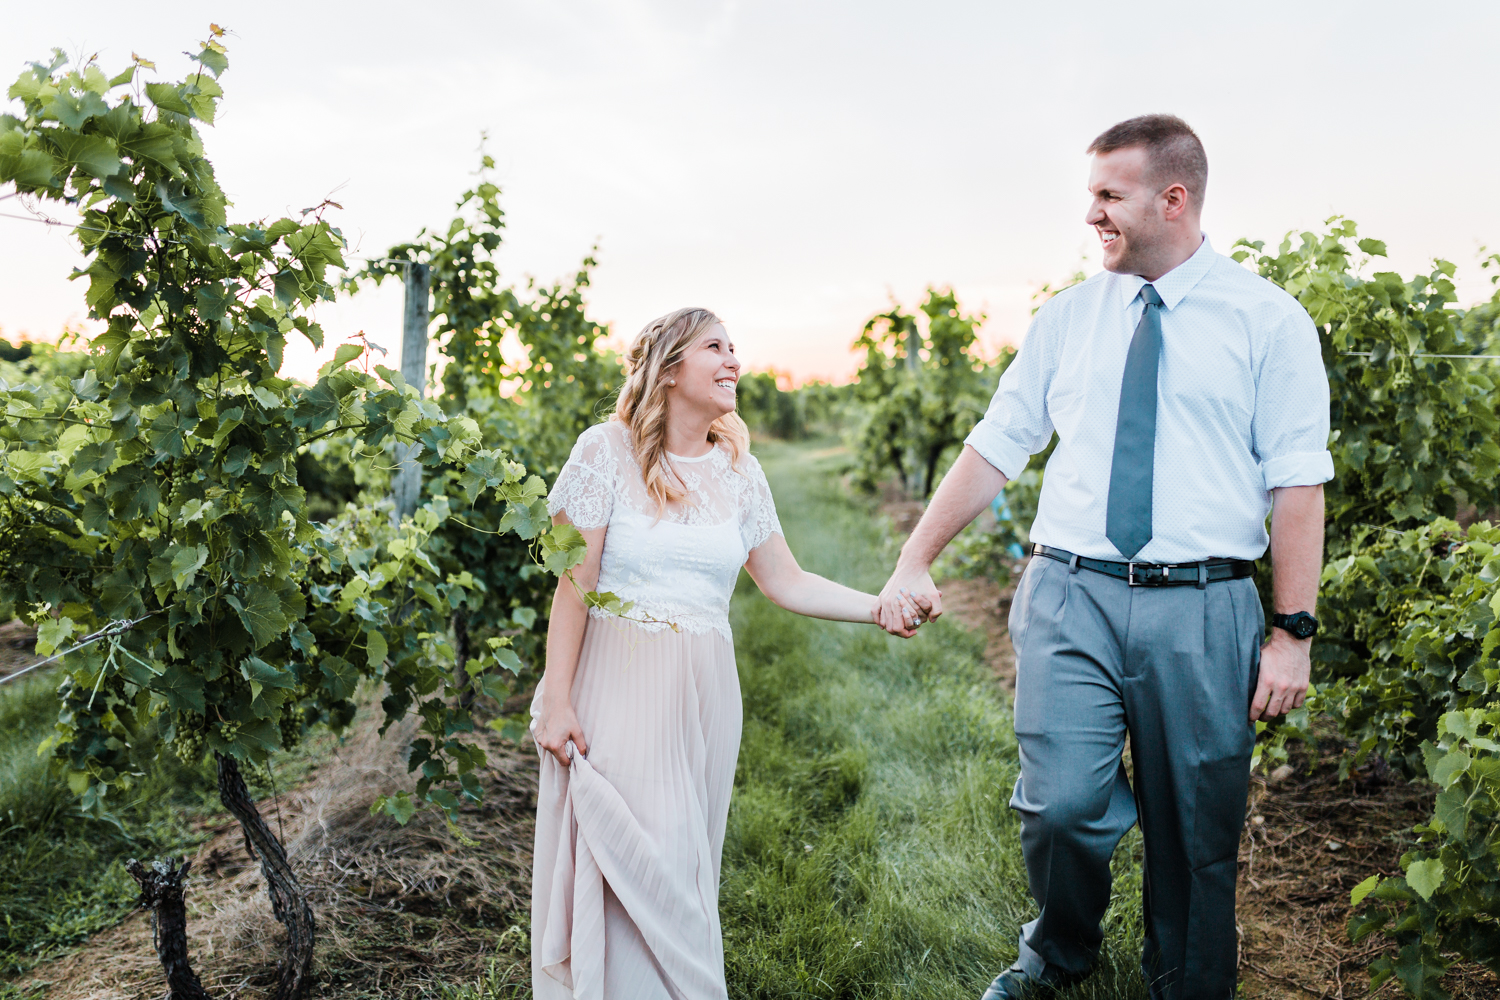 classy engagement photo outfits - md wedding photographer and cinematographer